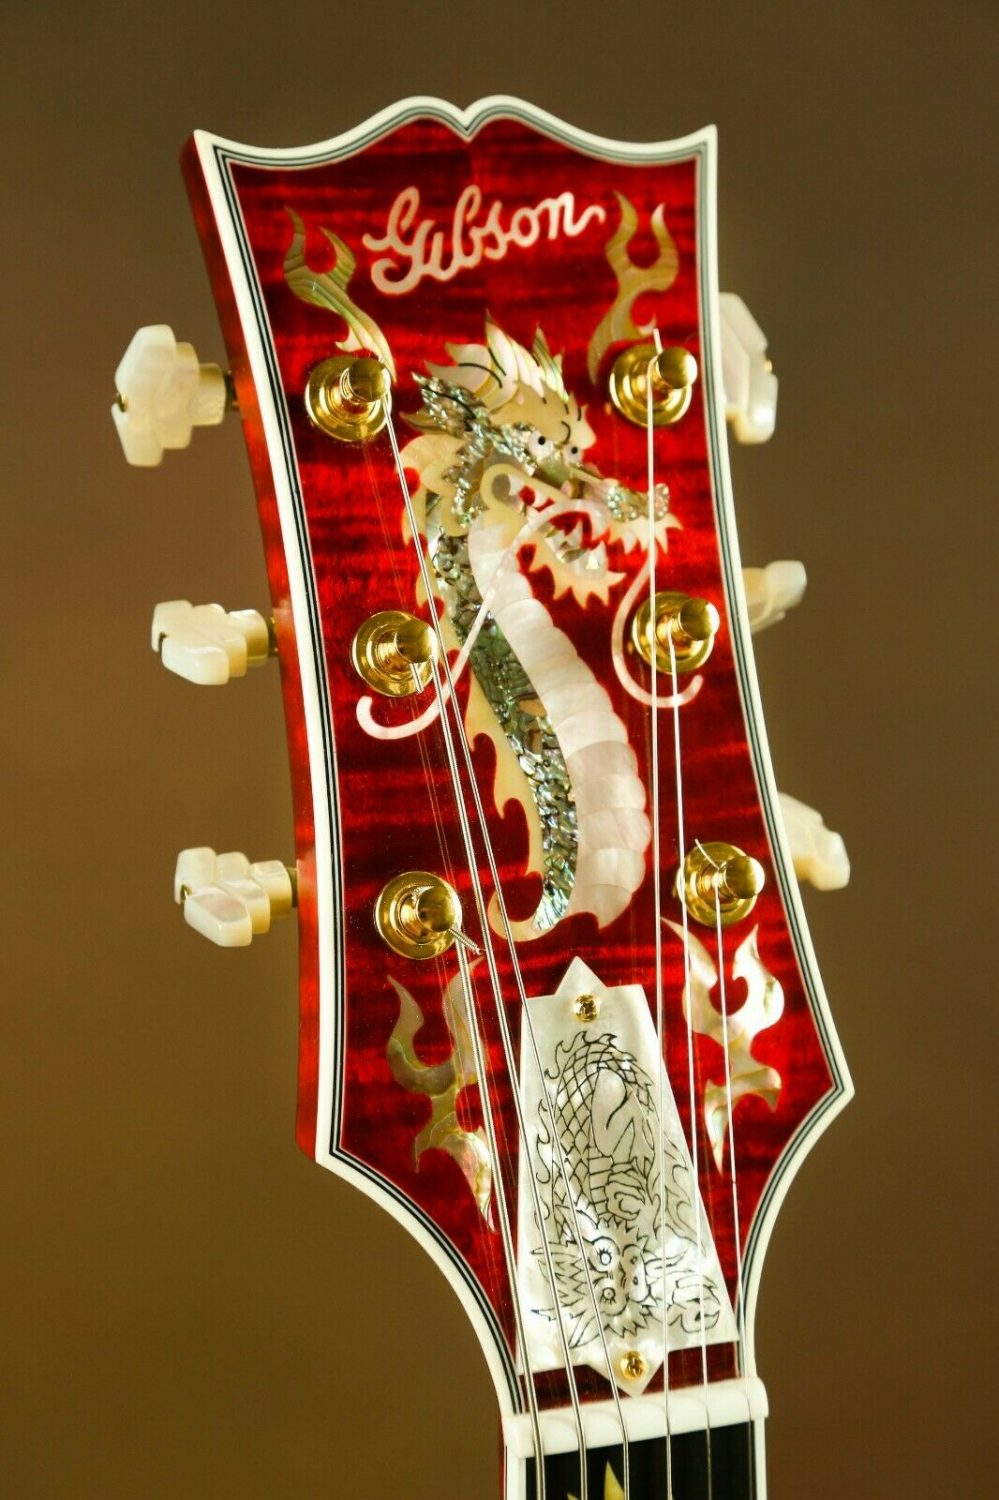 This is one of the most special guitars to come out of Gibson in recent memory: the Gibson Super 400 China Dragon.